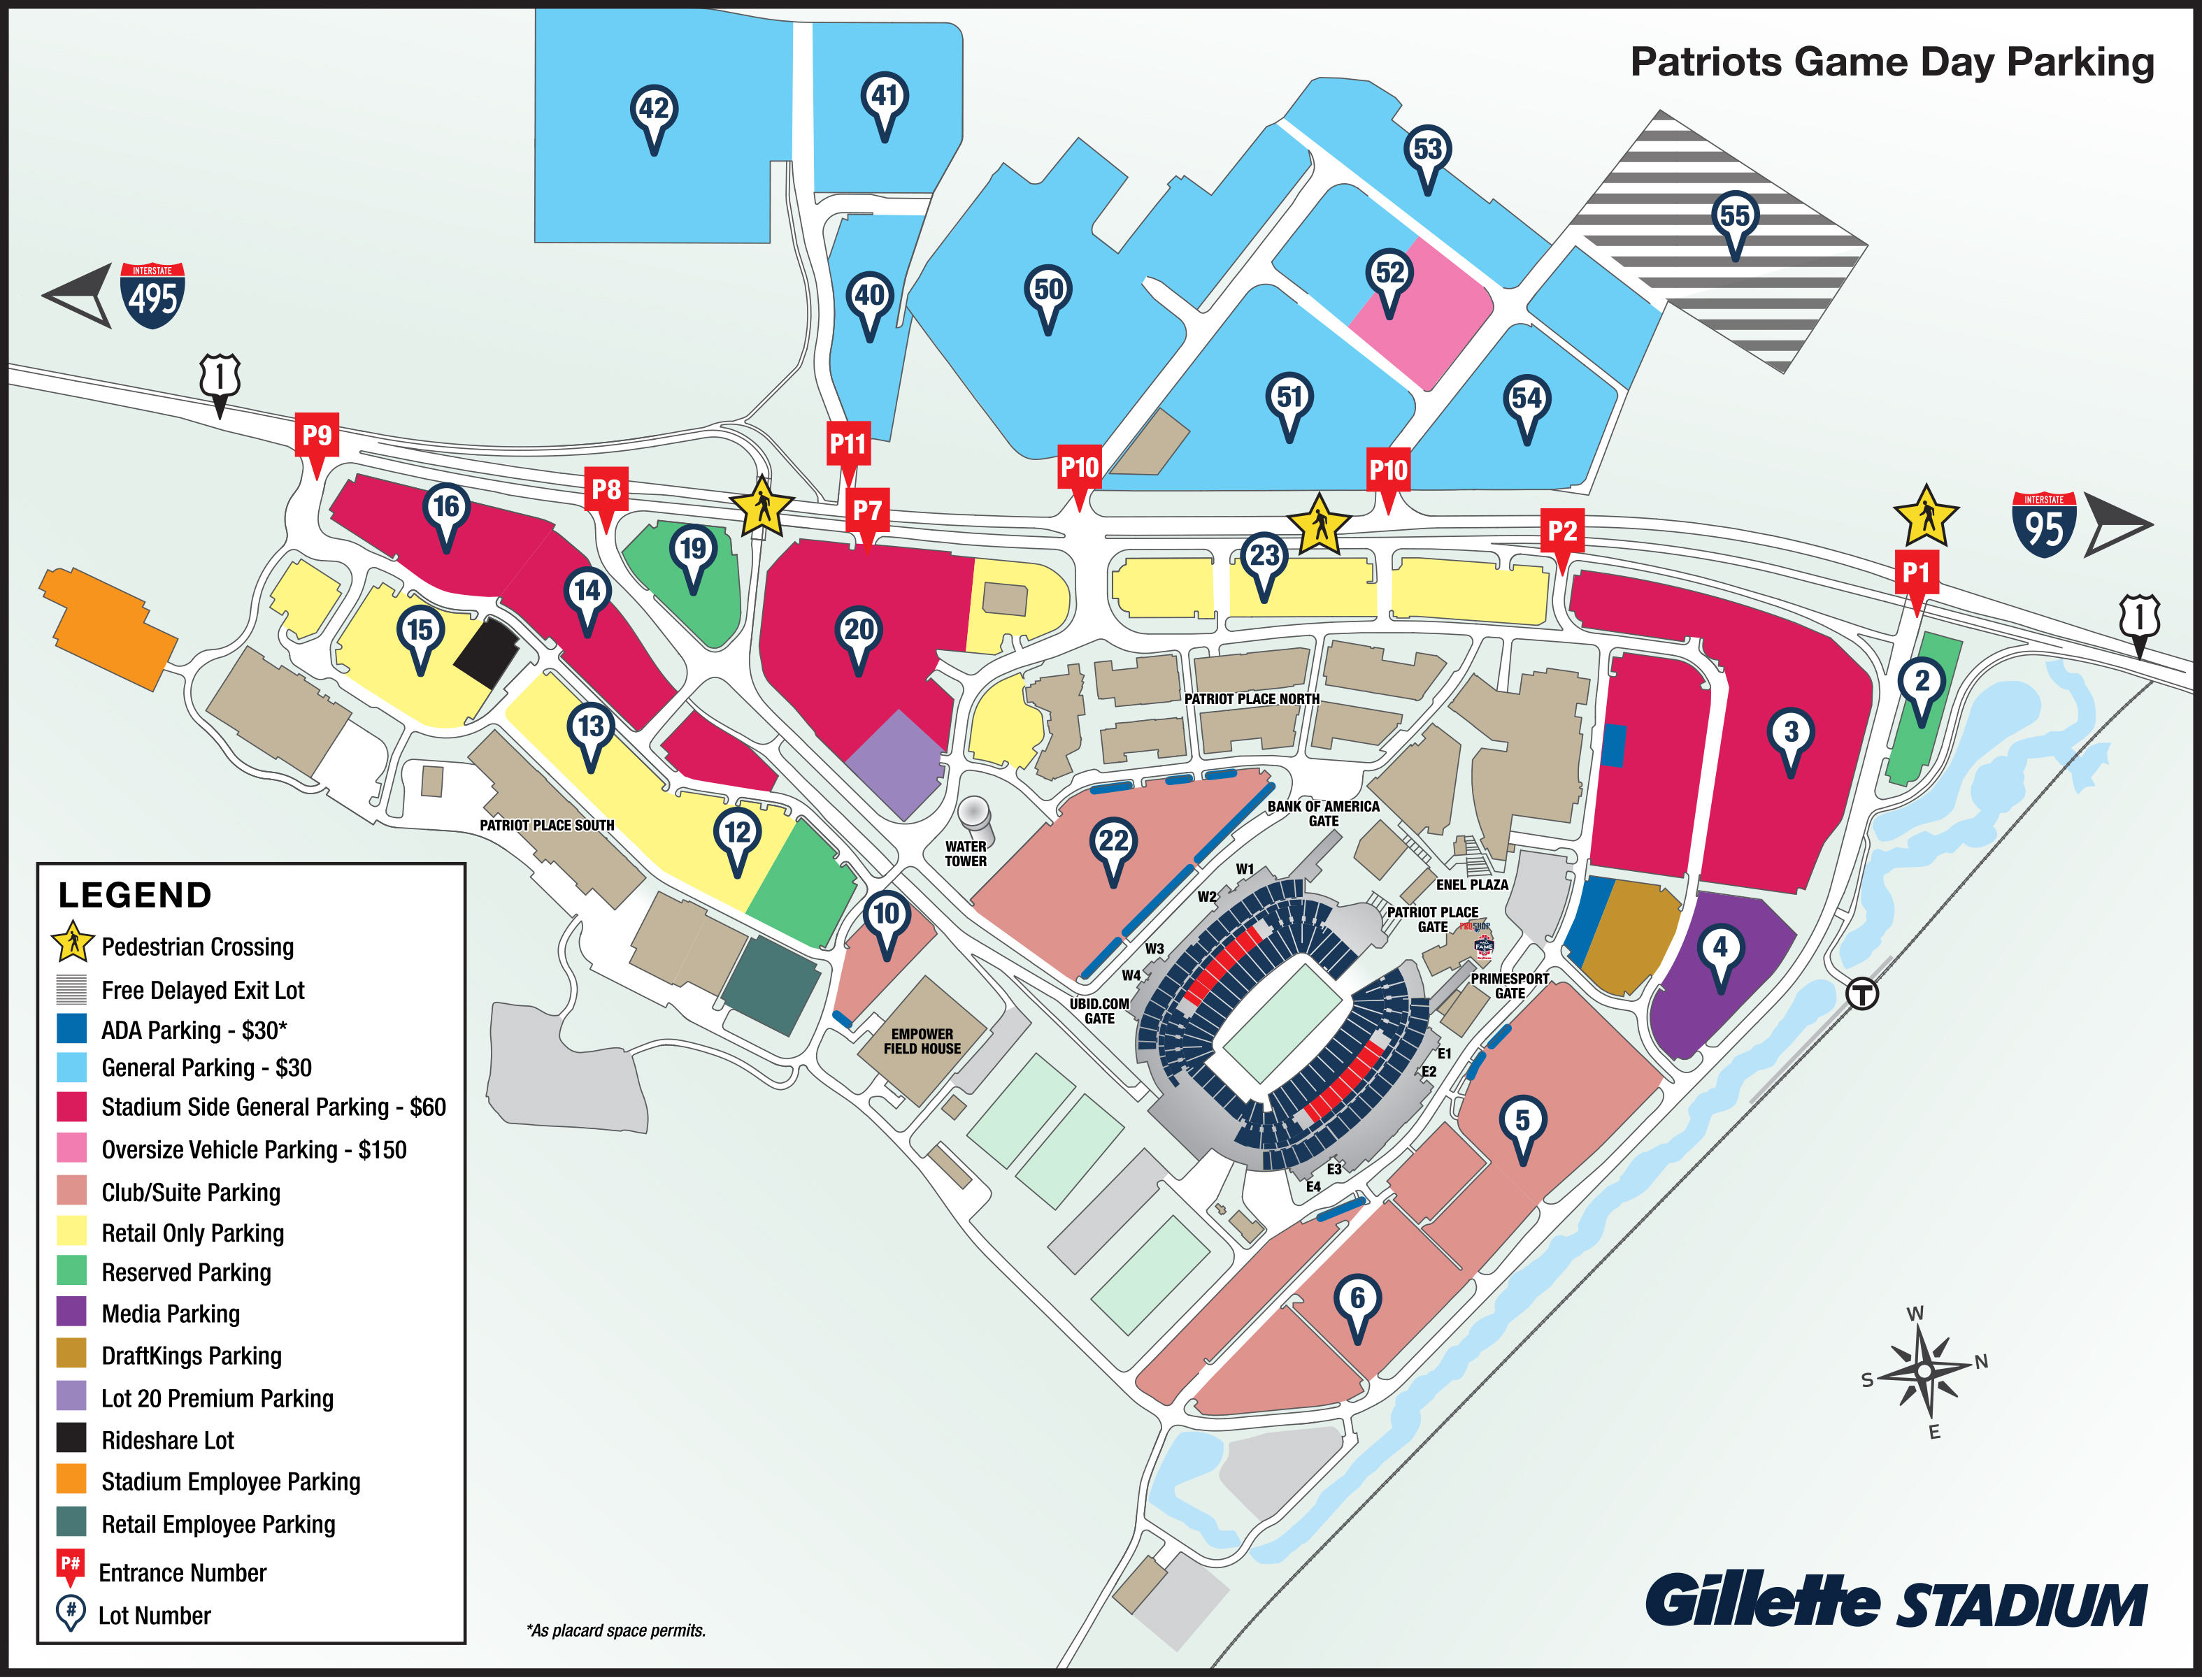 Patriots Parking Map - Gillette Stadium on wyoming county numbers, restaurant numbers, bus route numbers, time zone numbers, film numbers, container numbers, blog numbers, flag numbers,